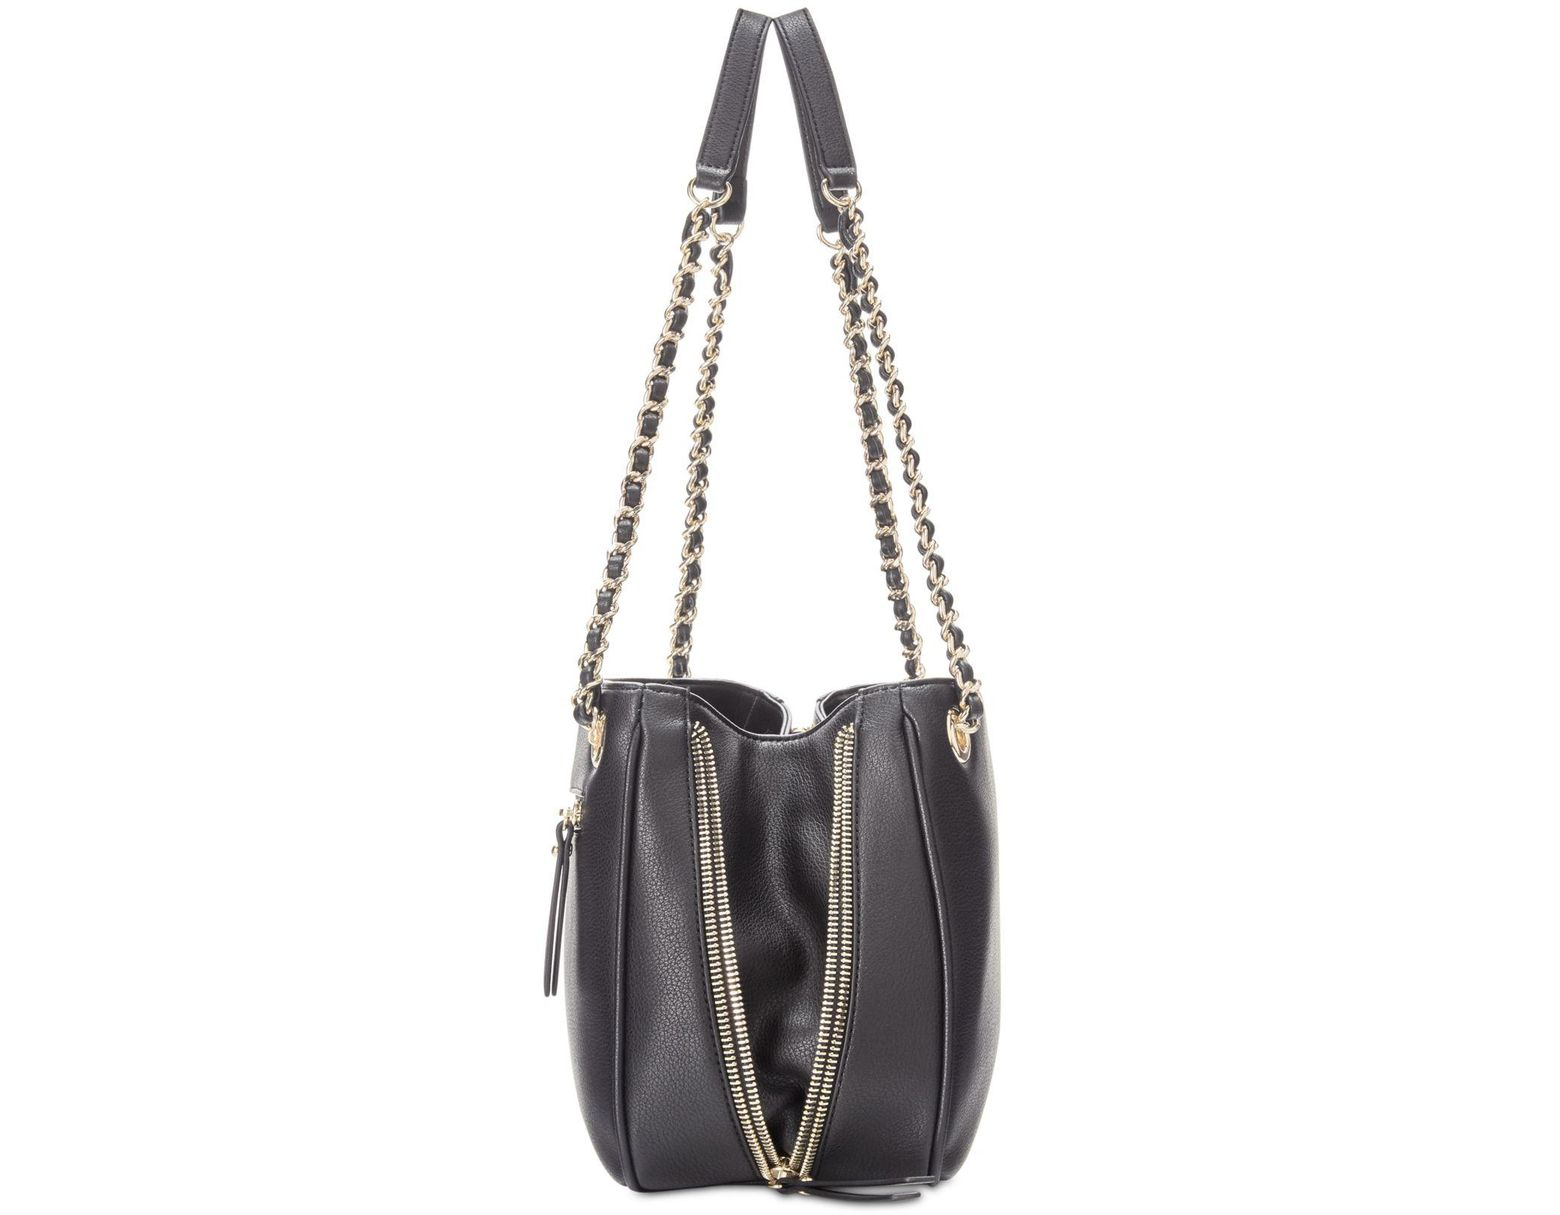 70ae48e88407 INC International Concepts I.n.c. Deliz Chain Shoulder Bag, Created For  Macy's in Black - Save 53% - Lyst